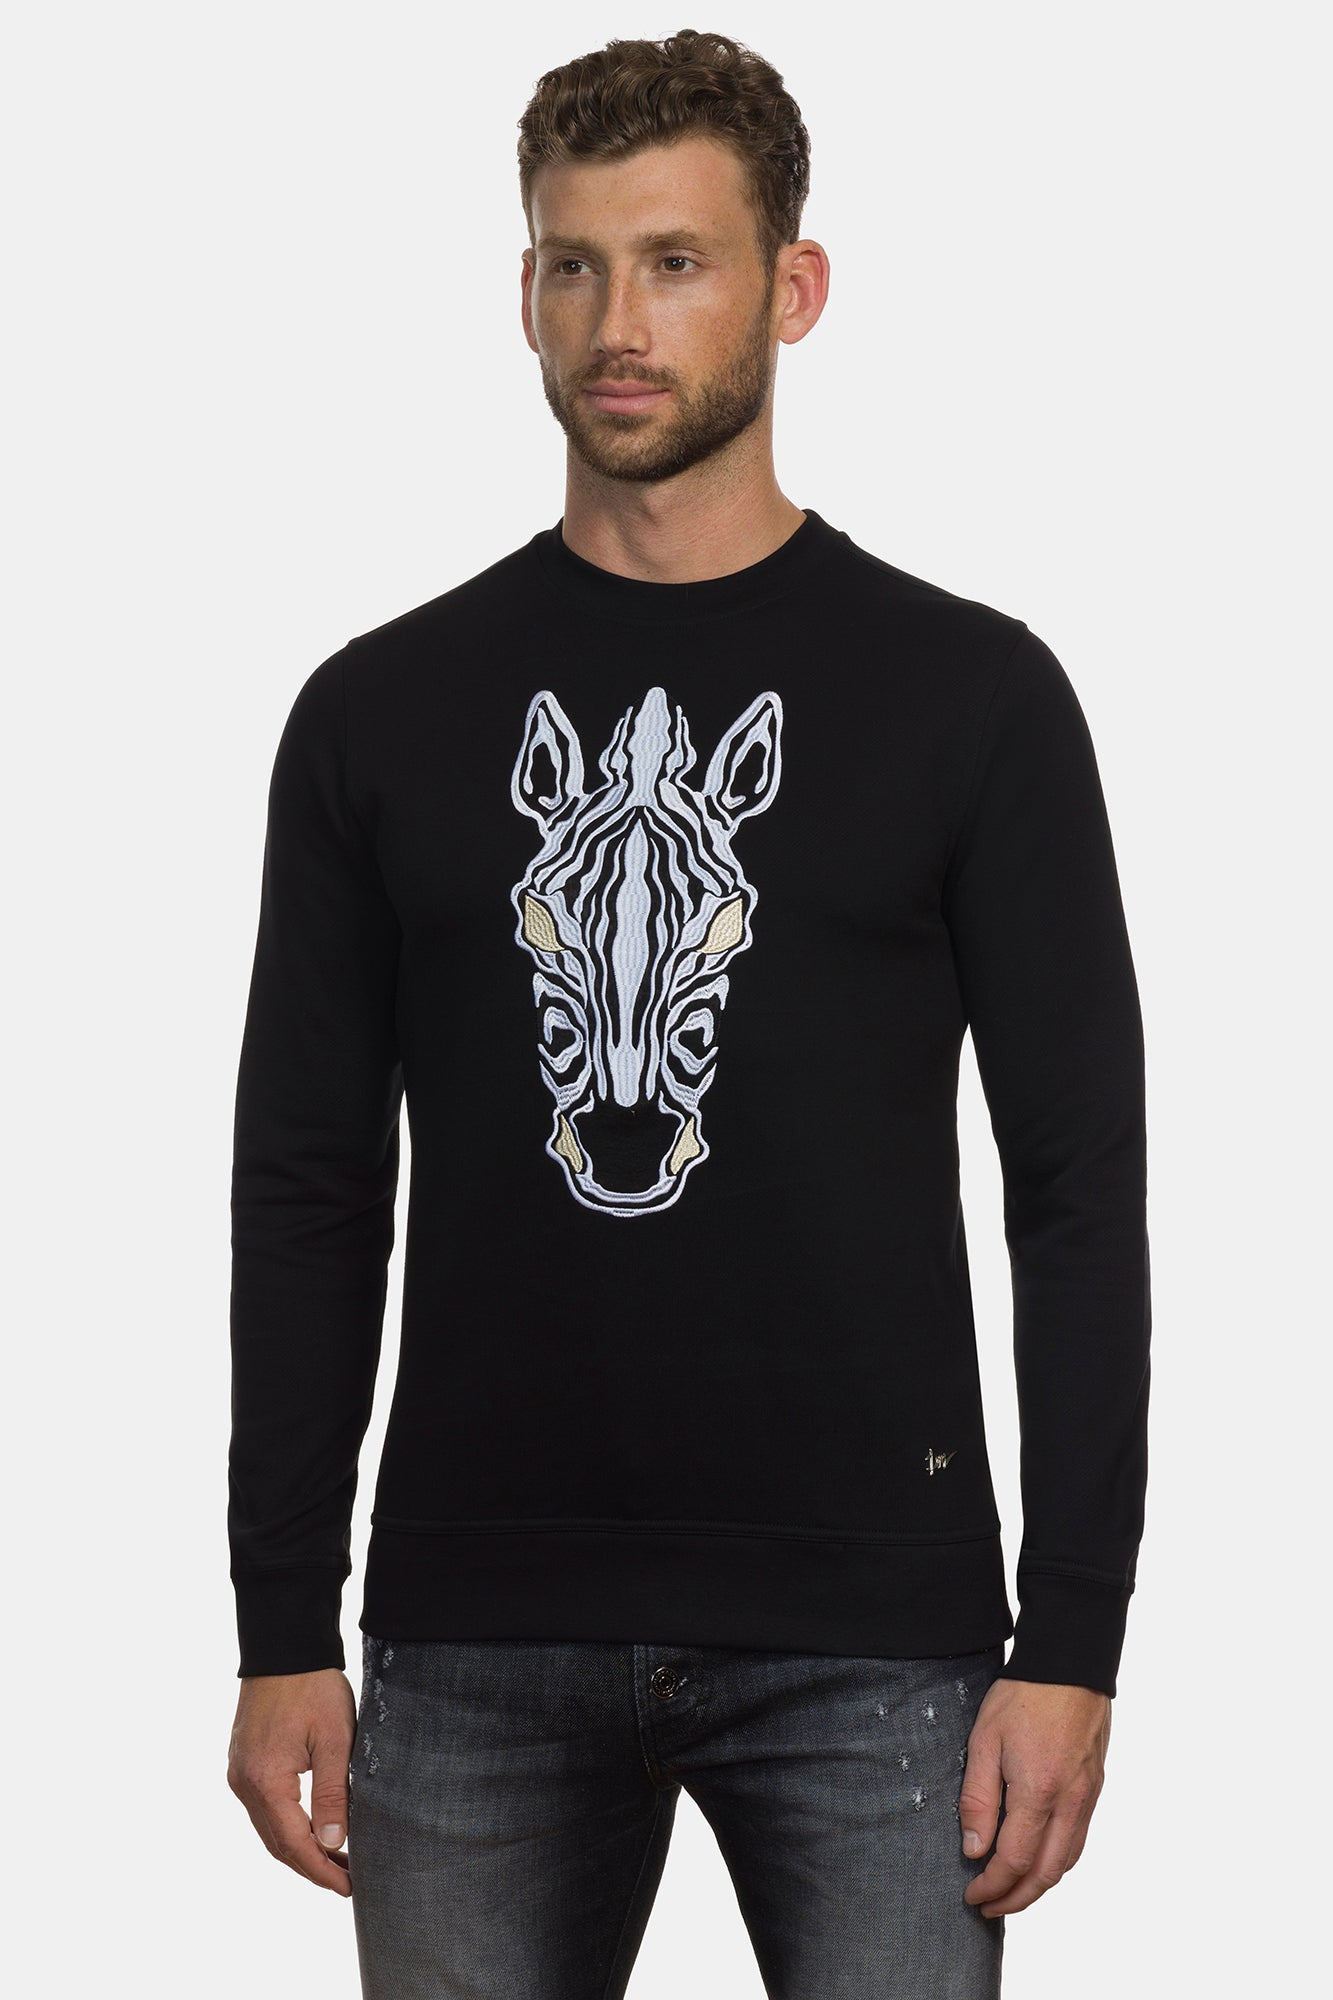 Equus Burchelli Zebra Sweater - DIMORAL OFFICIAL